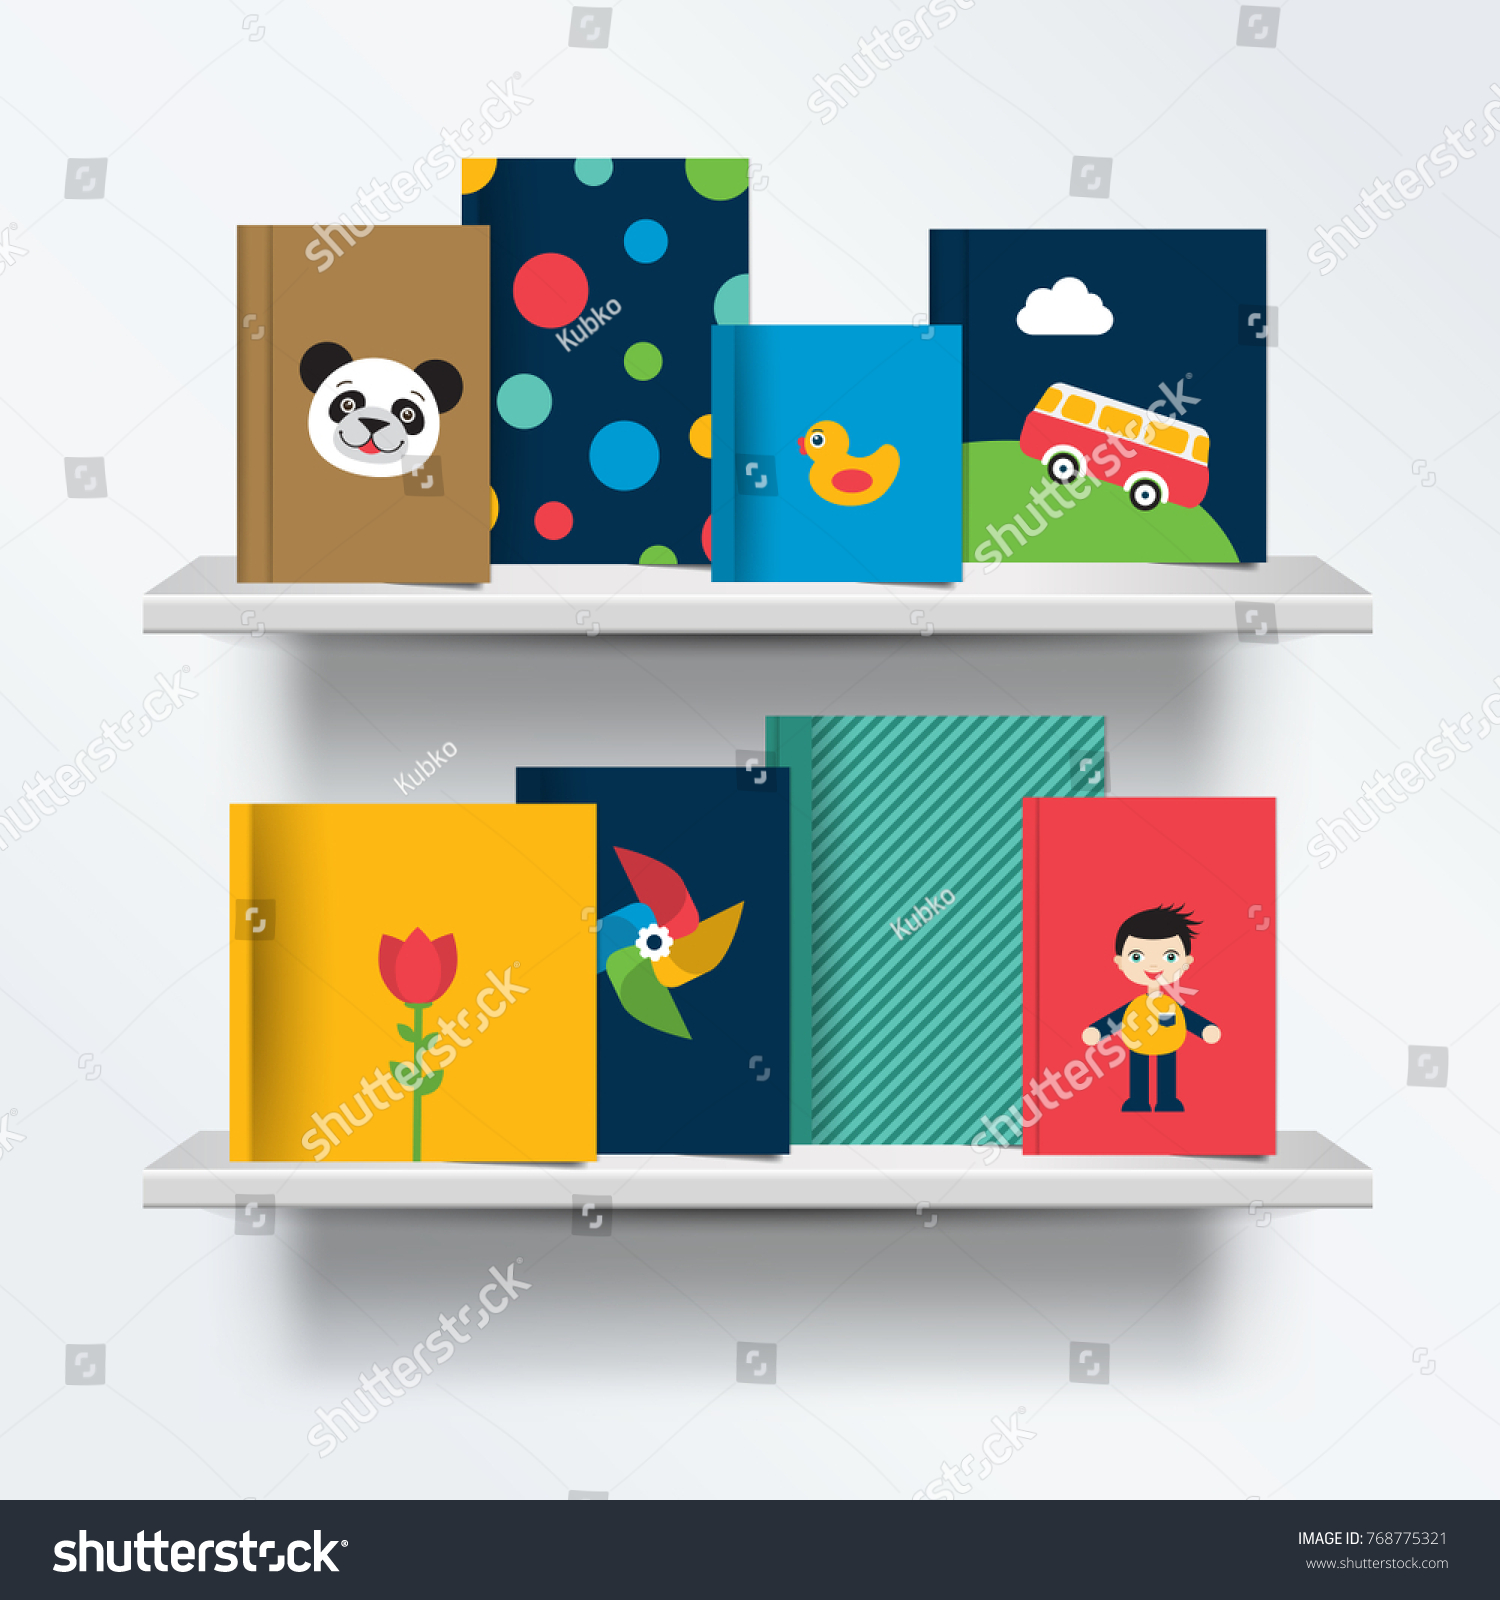 cover books grey shadows kids standing background with bookshelf children royalty image view stock vector hd of front on